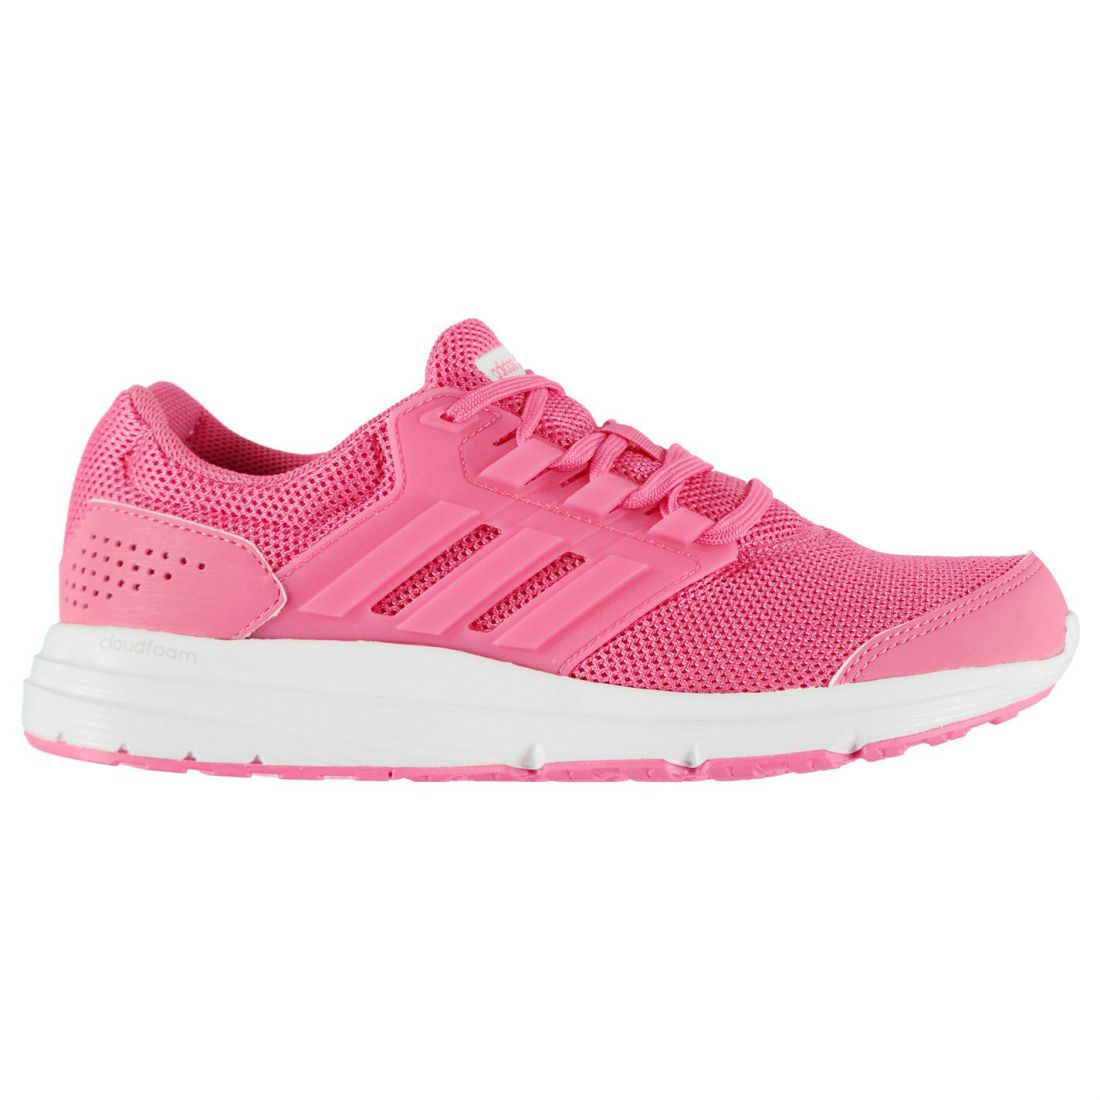 Adidas Womens Galaxy 4 Trainers Runners Lace Up Breathable Lightweight Mesh